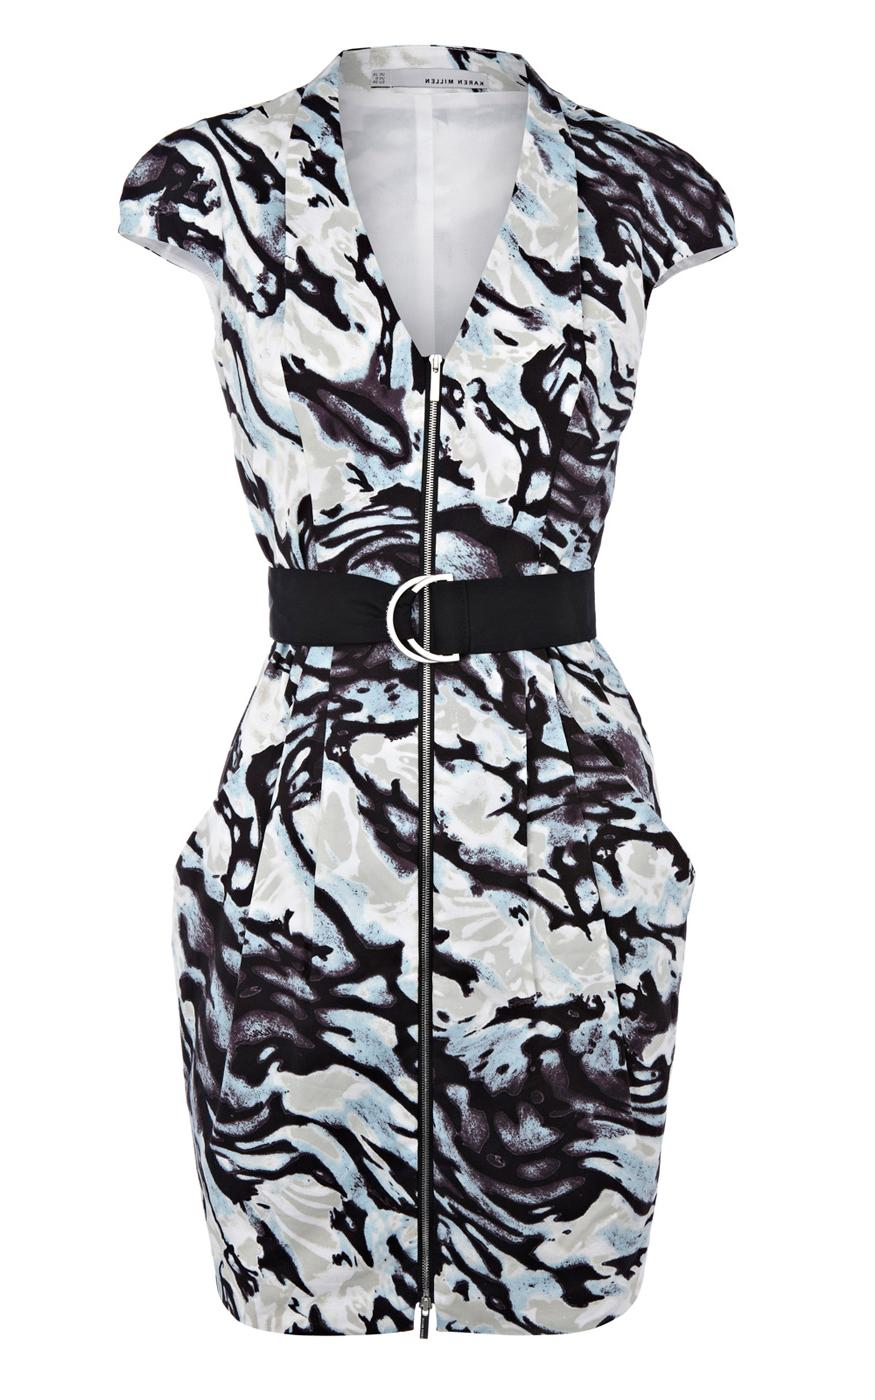 Karen Millen Zebra Print Dress